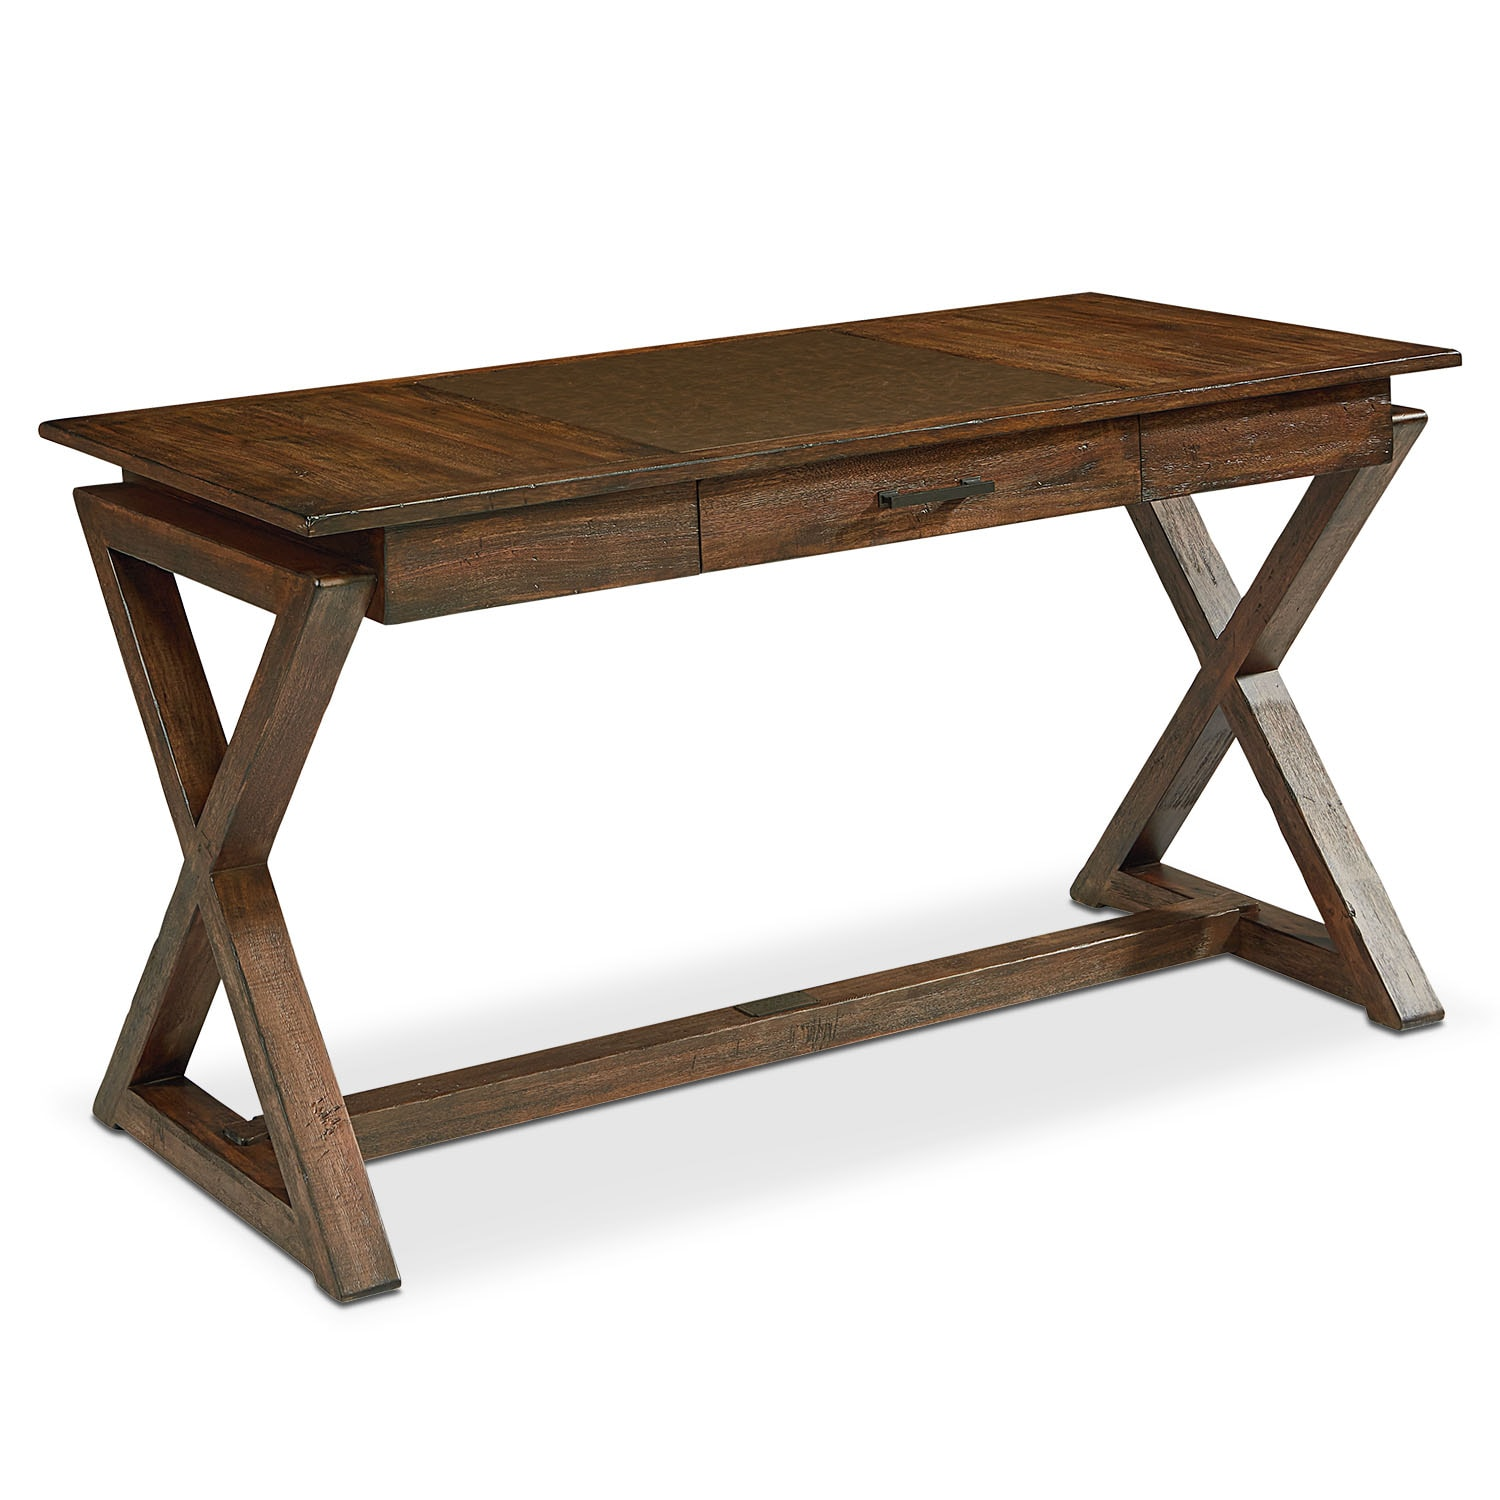 Sawbuck Desk - Barn Door